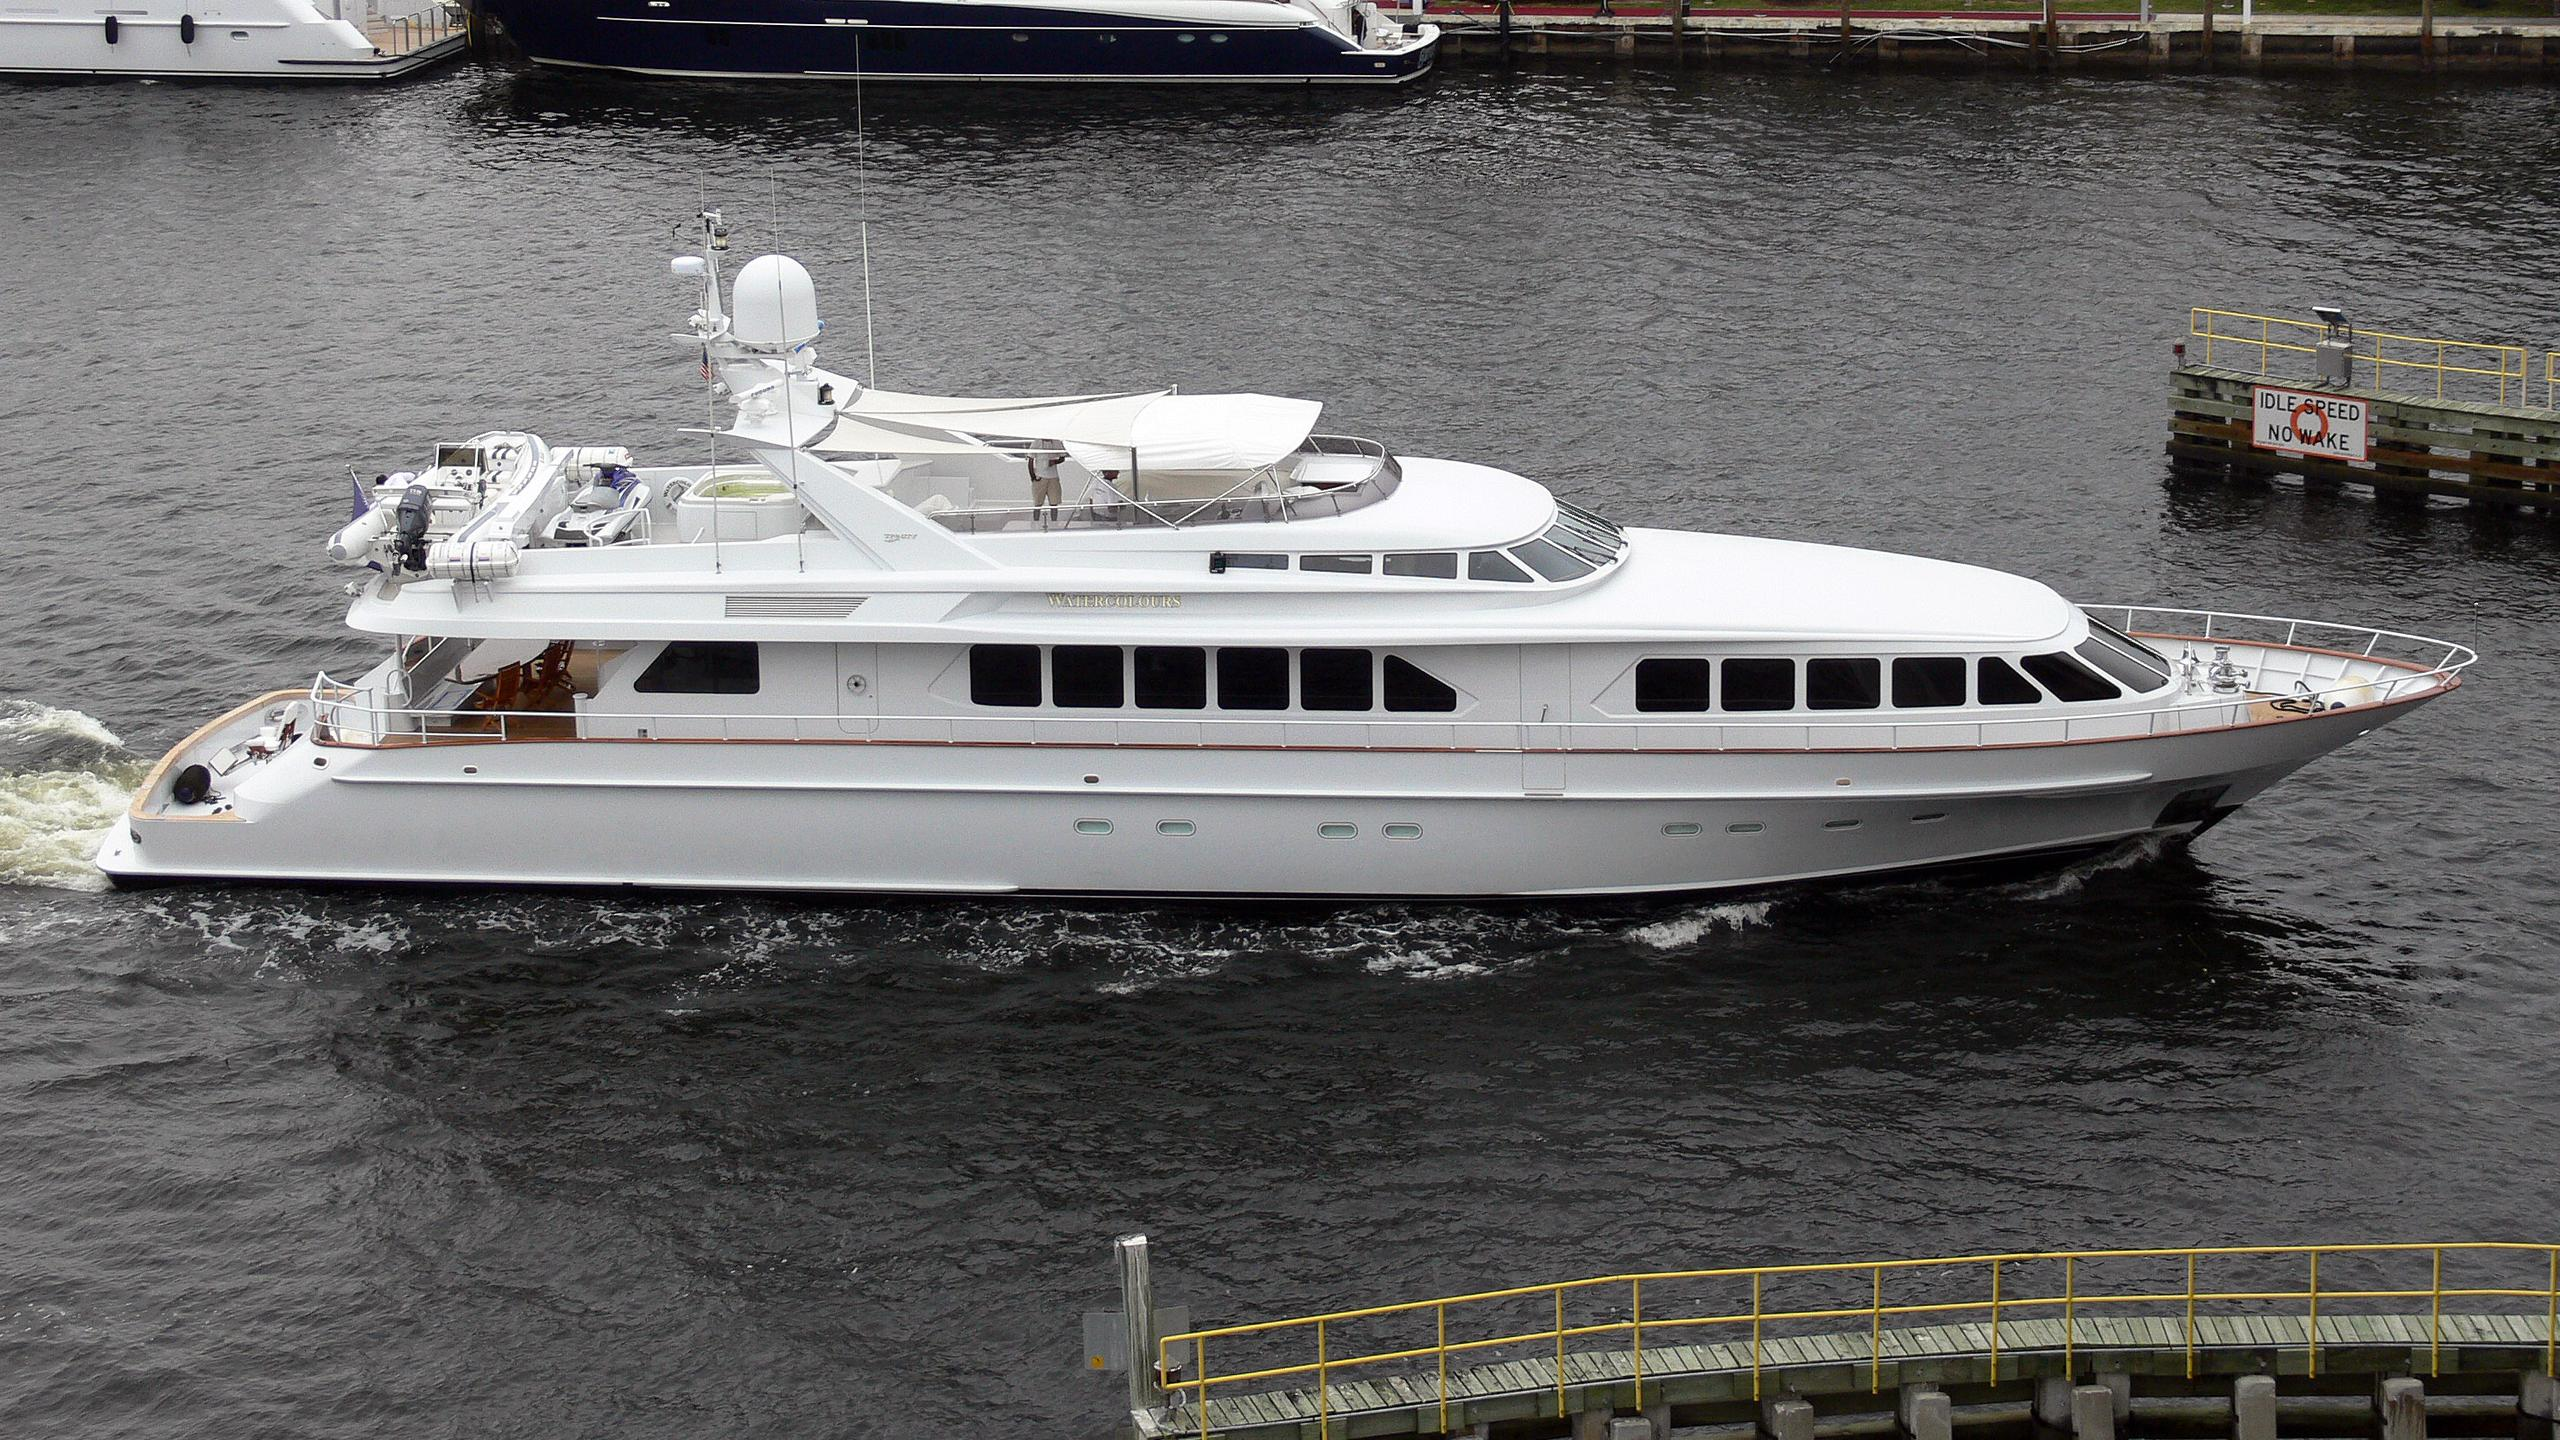 watercolours-motor-yacht-trinity-1991-35m-cruising-profile